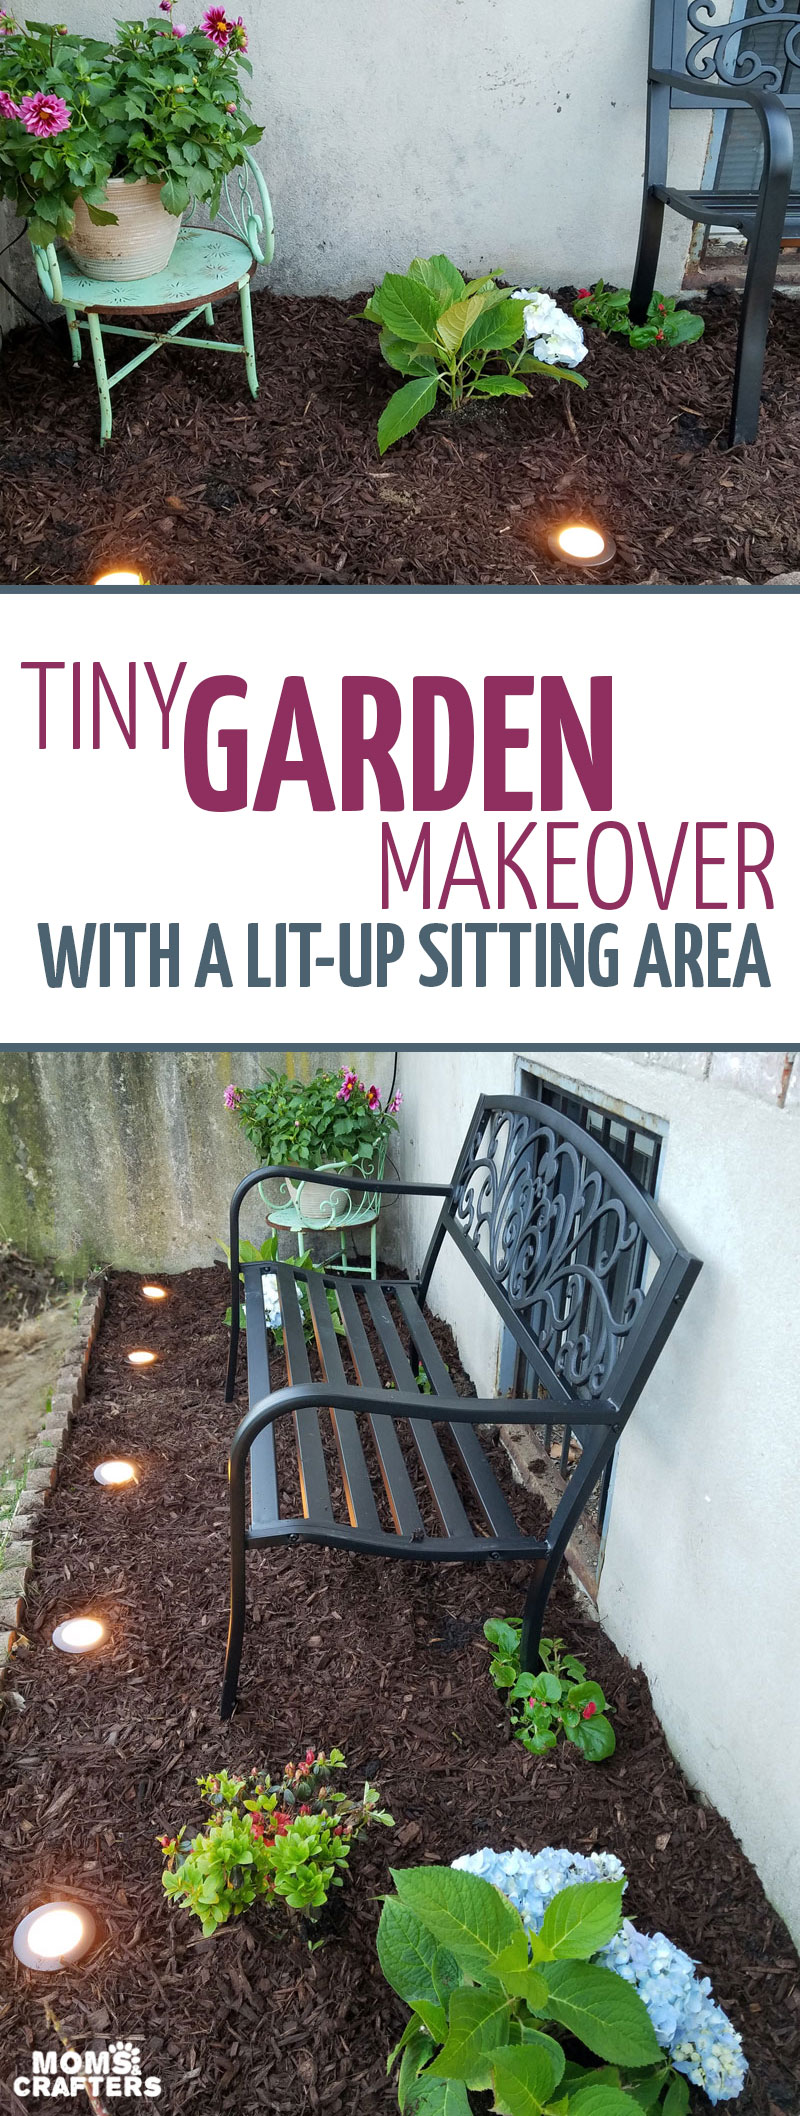 You'll love this tiny garden makeover featuring a sweet eclectic sitting area. This city garden idea is perfect for tiny spaces and includes a parkbench. This DIY lawn and garden makeover was simple and easy to complete #garden #citylife #momsandcrafters